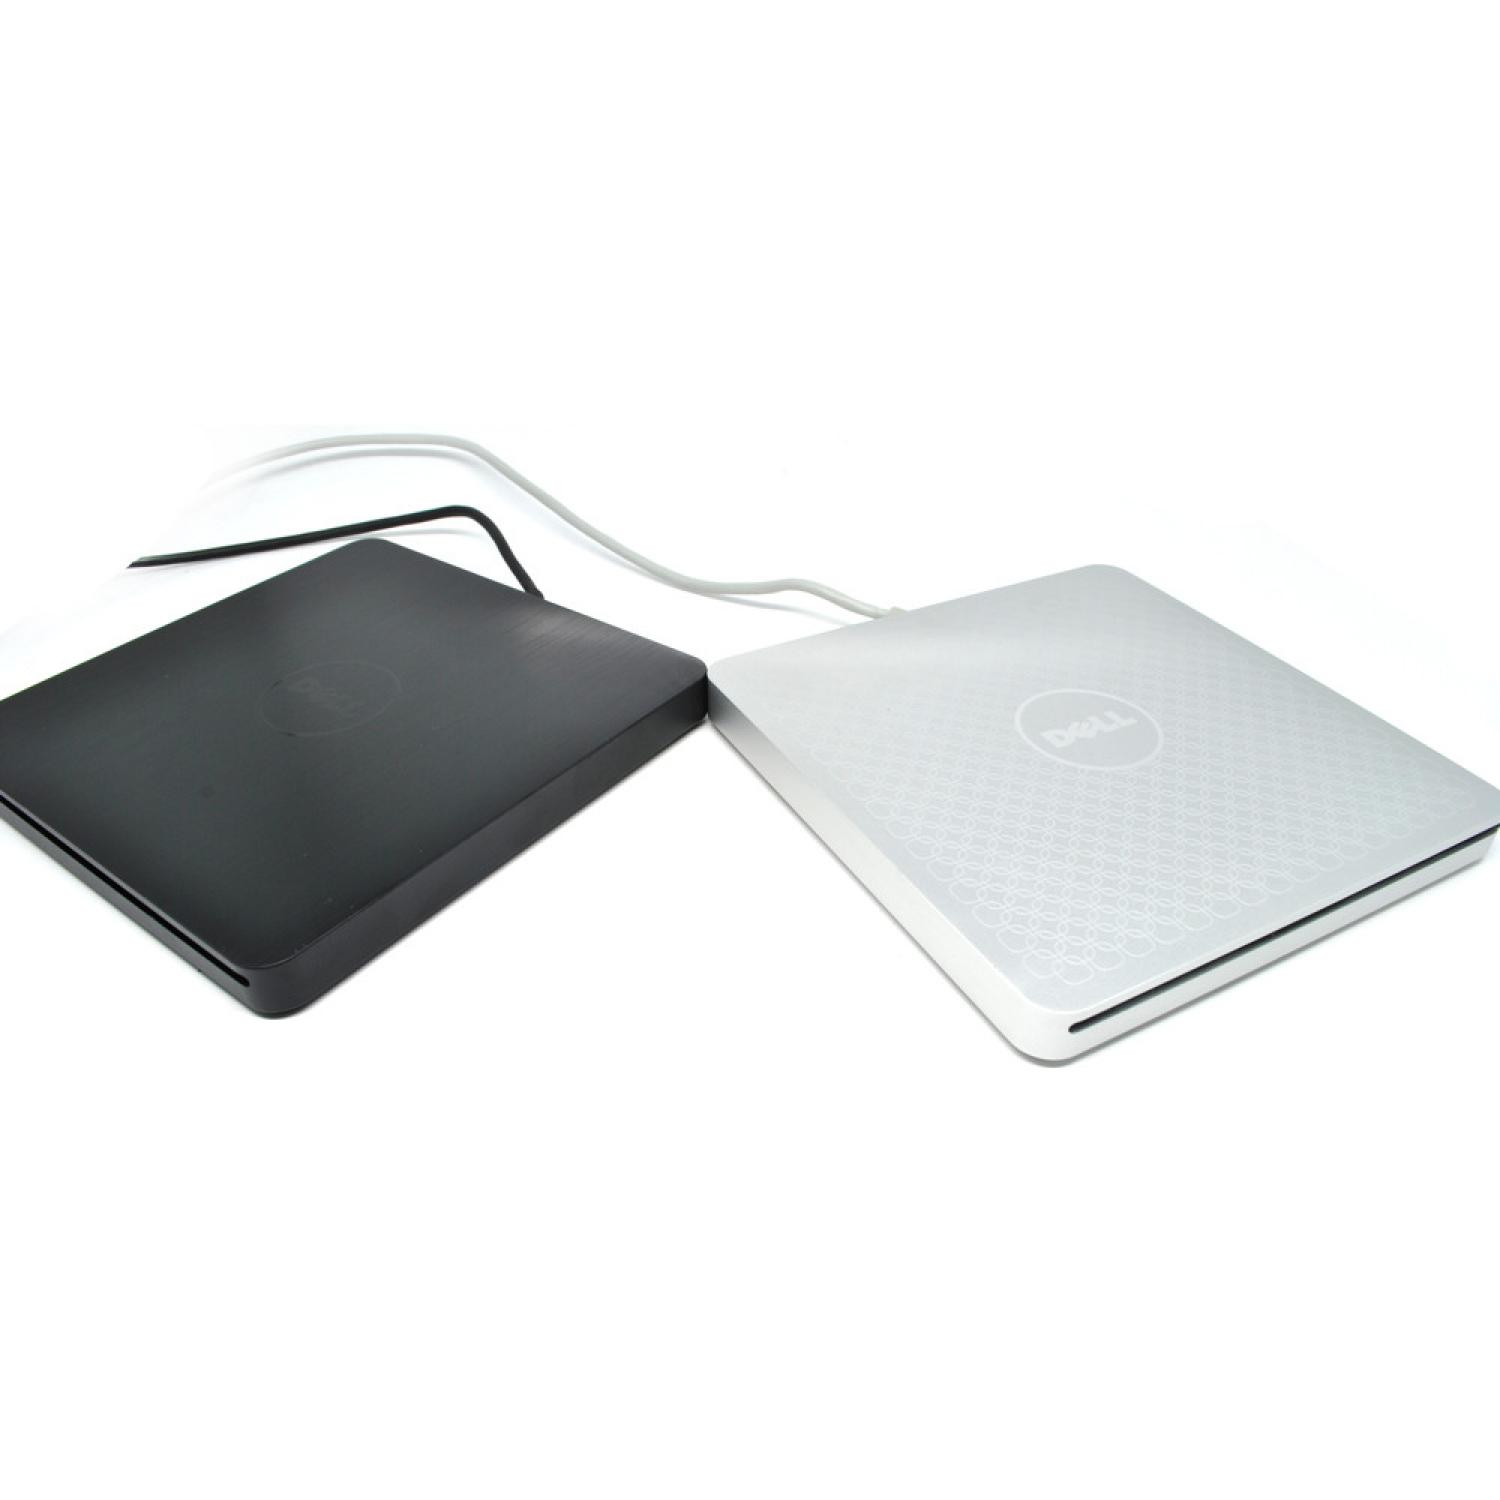 Dell A13DVD01 USB 2.0 8X DVD-RW Portable Optical Drive 14 DAYS